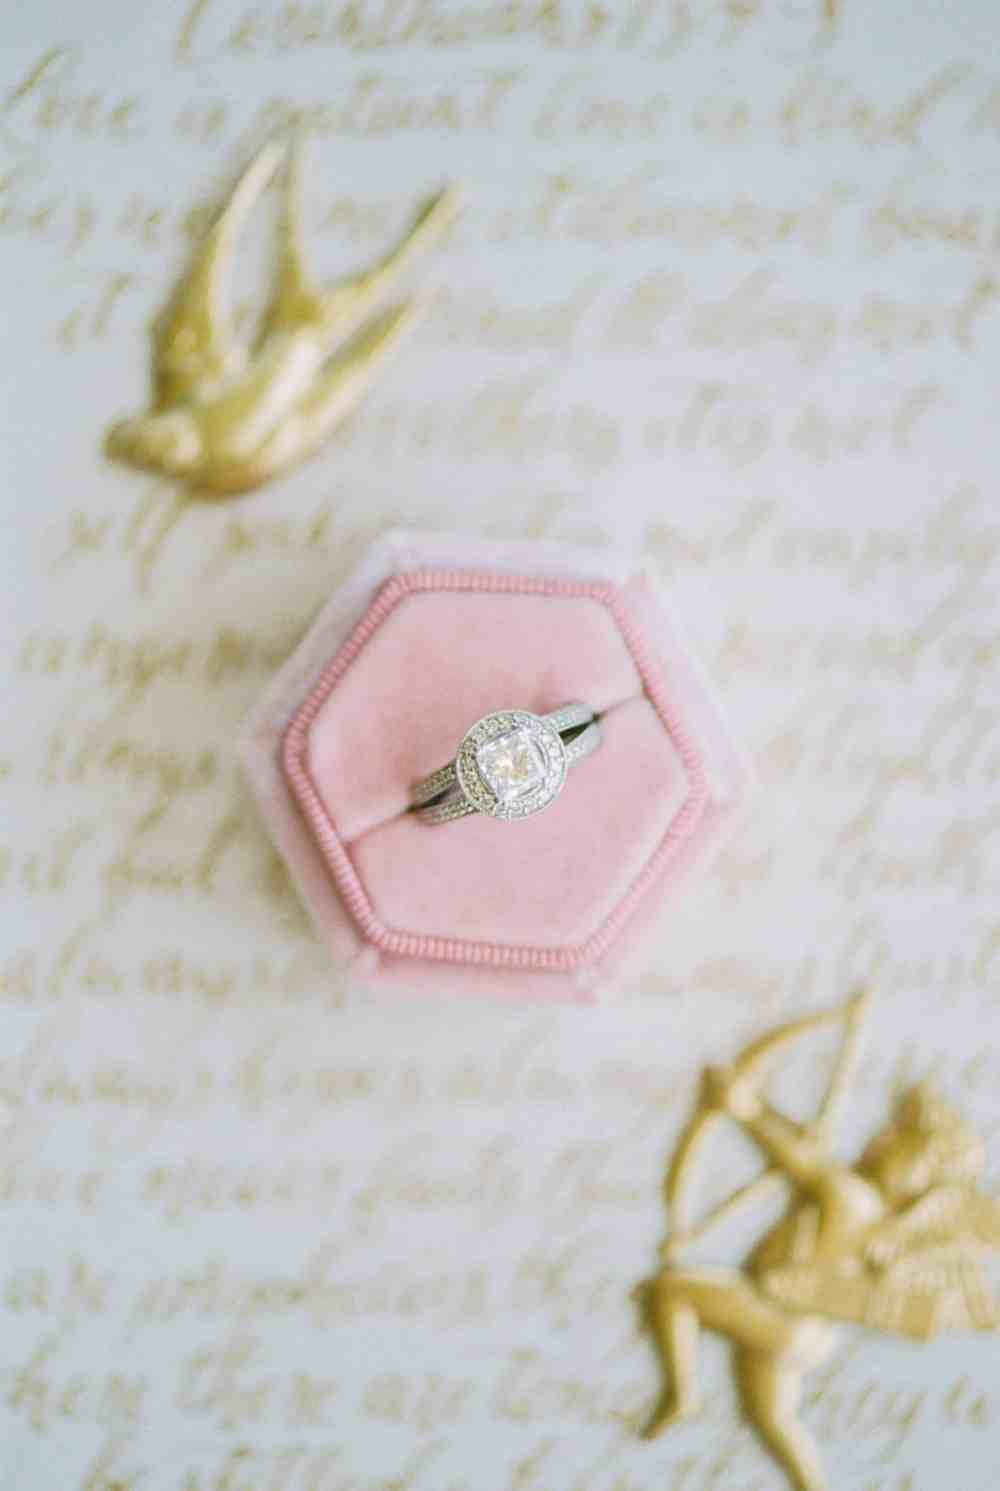 Ring on customer calligraphy vows